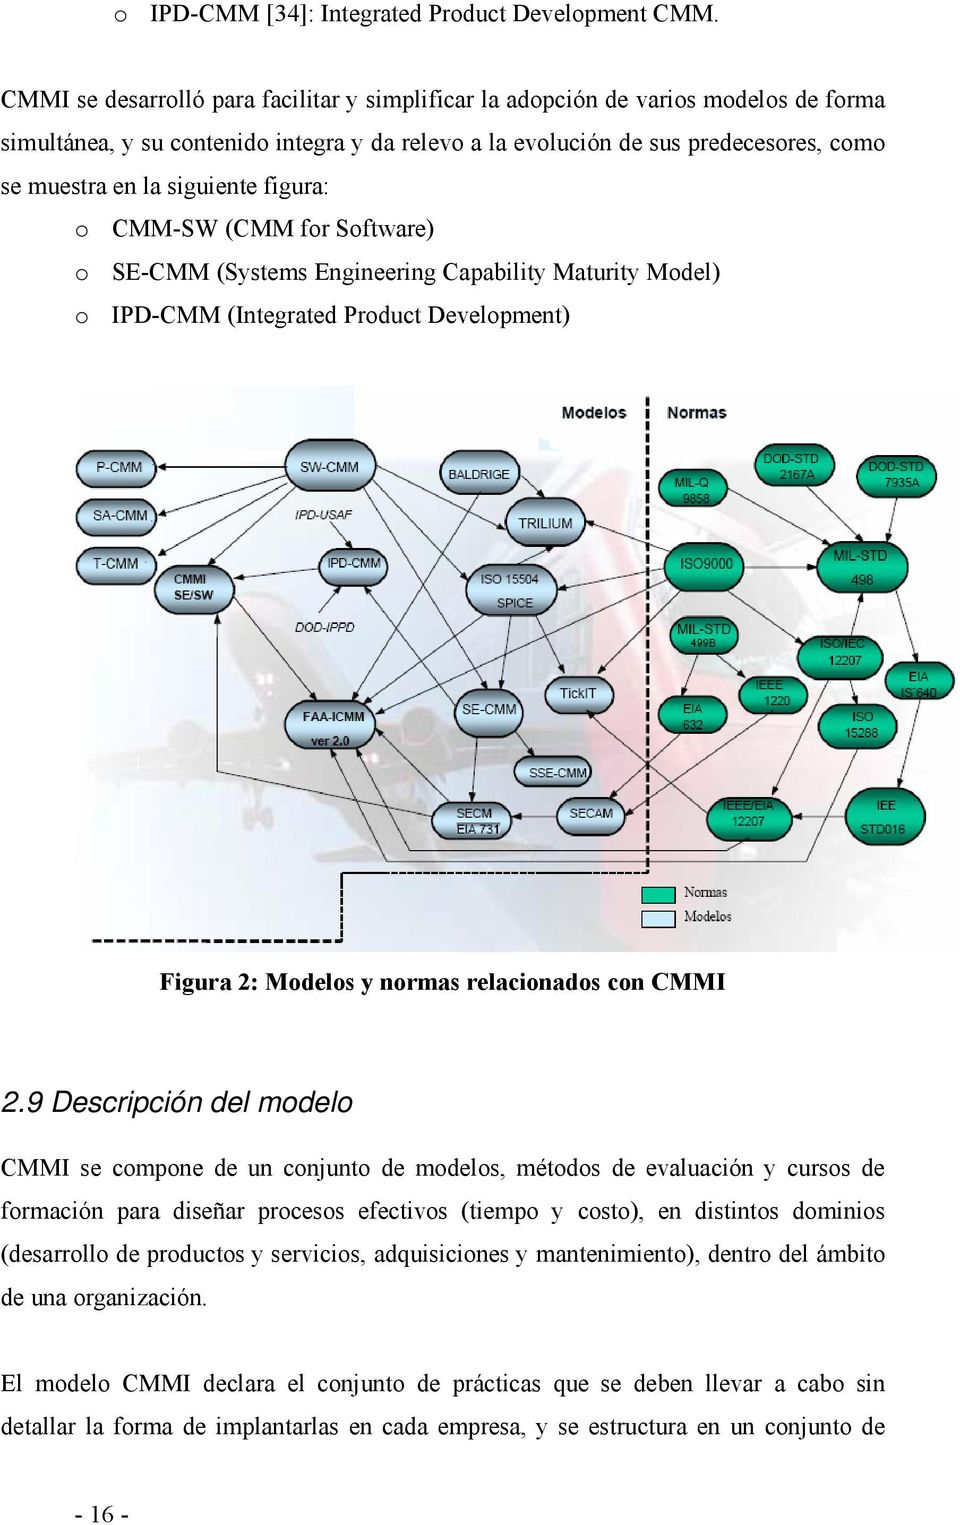 siguiente figura: o CMM-SW (CMM for Software) o SE-CMM (Systems Engineering Capability Maturity Model) o IPD-CMM (Integrated Product Development) Figura 2: Modelos y normas relacionados con CMMI 2.